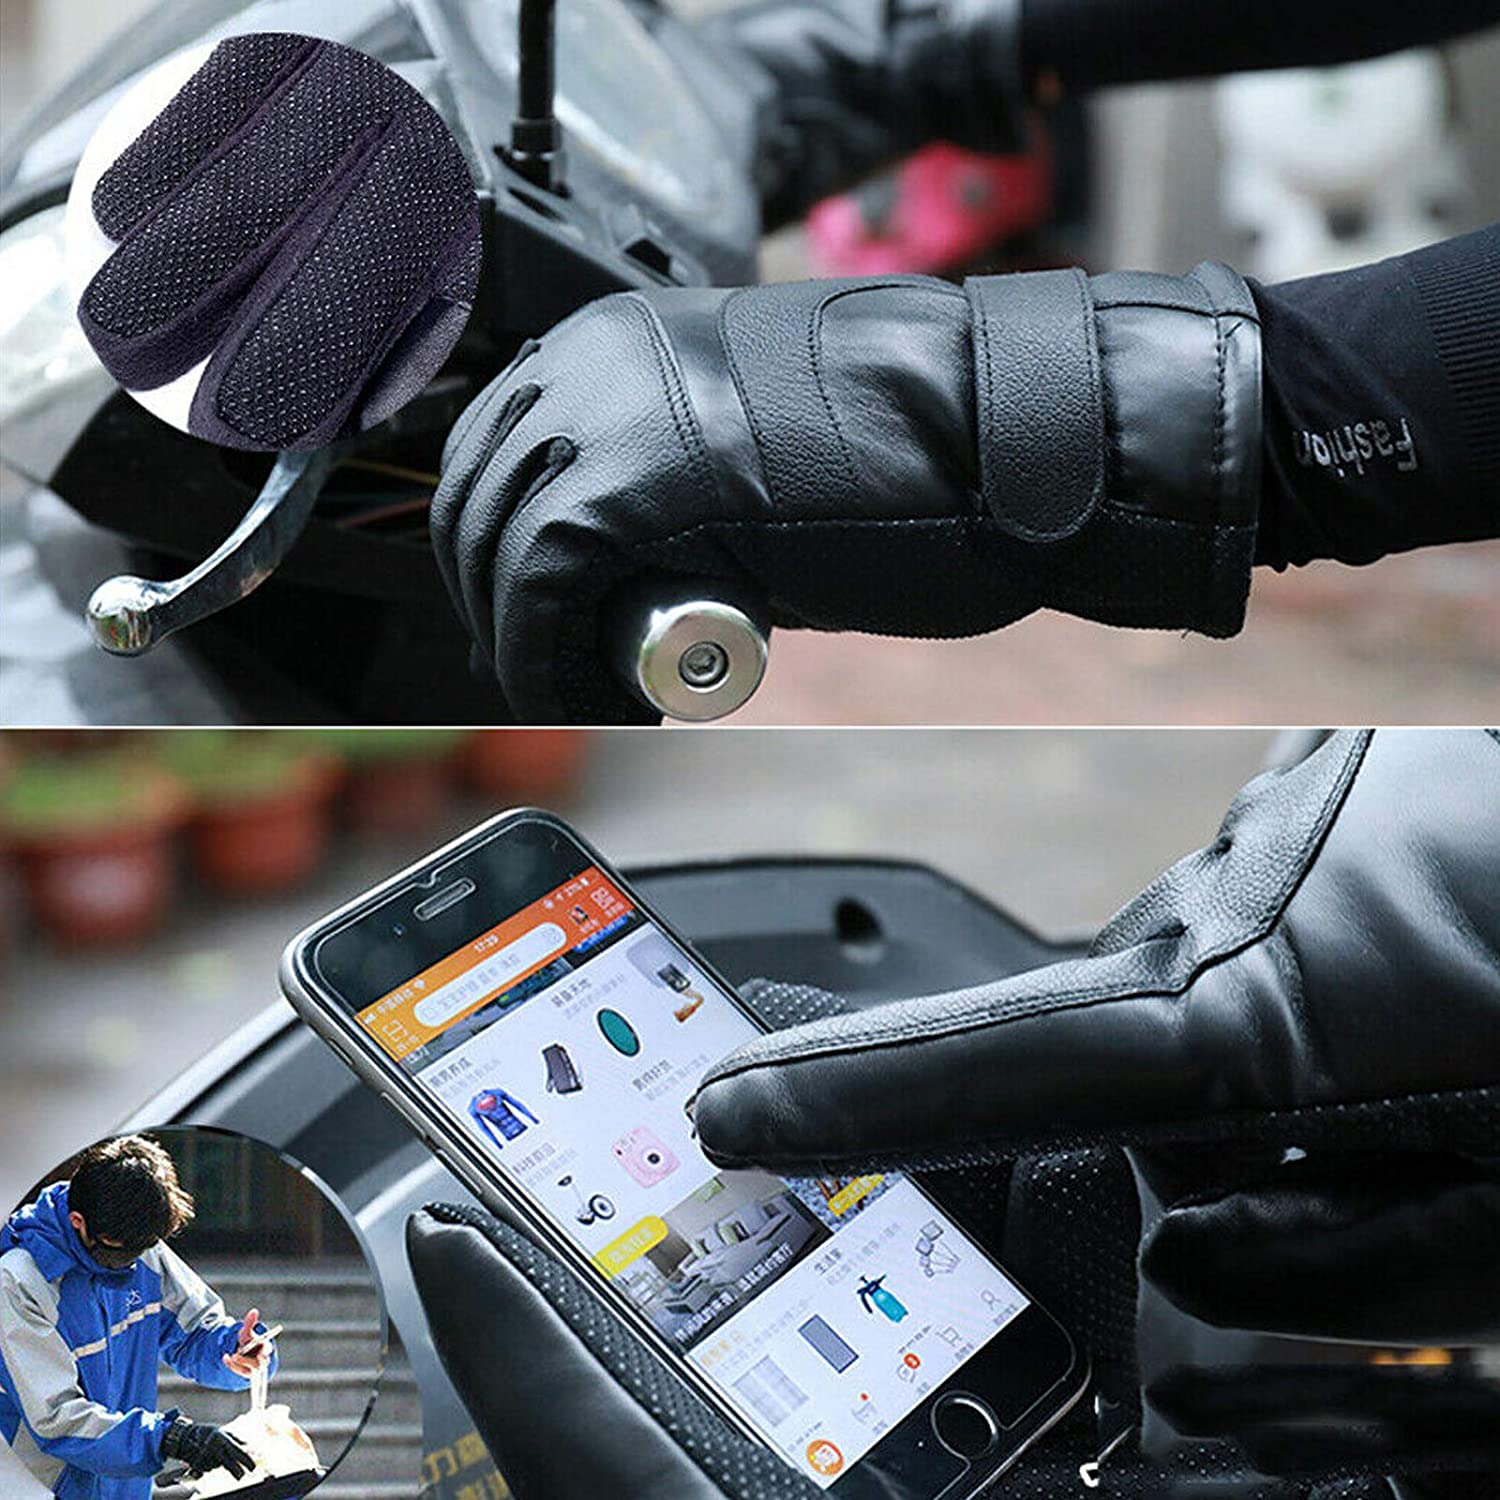 Working Men Women Thermal Heated Gloves for Motorcycle sportuli USB Heated Gloves Cycling Fishing Electric Hand Warmer Winter Heating Gloves